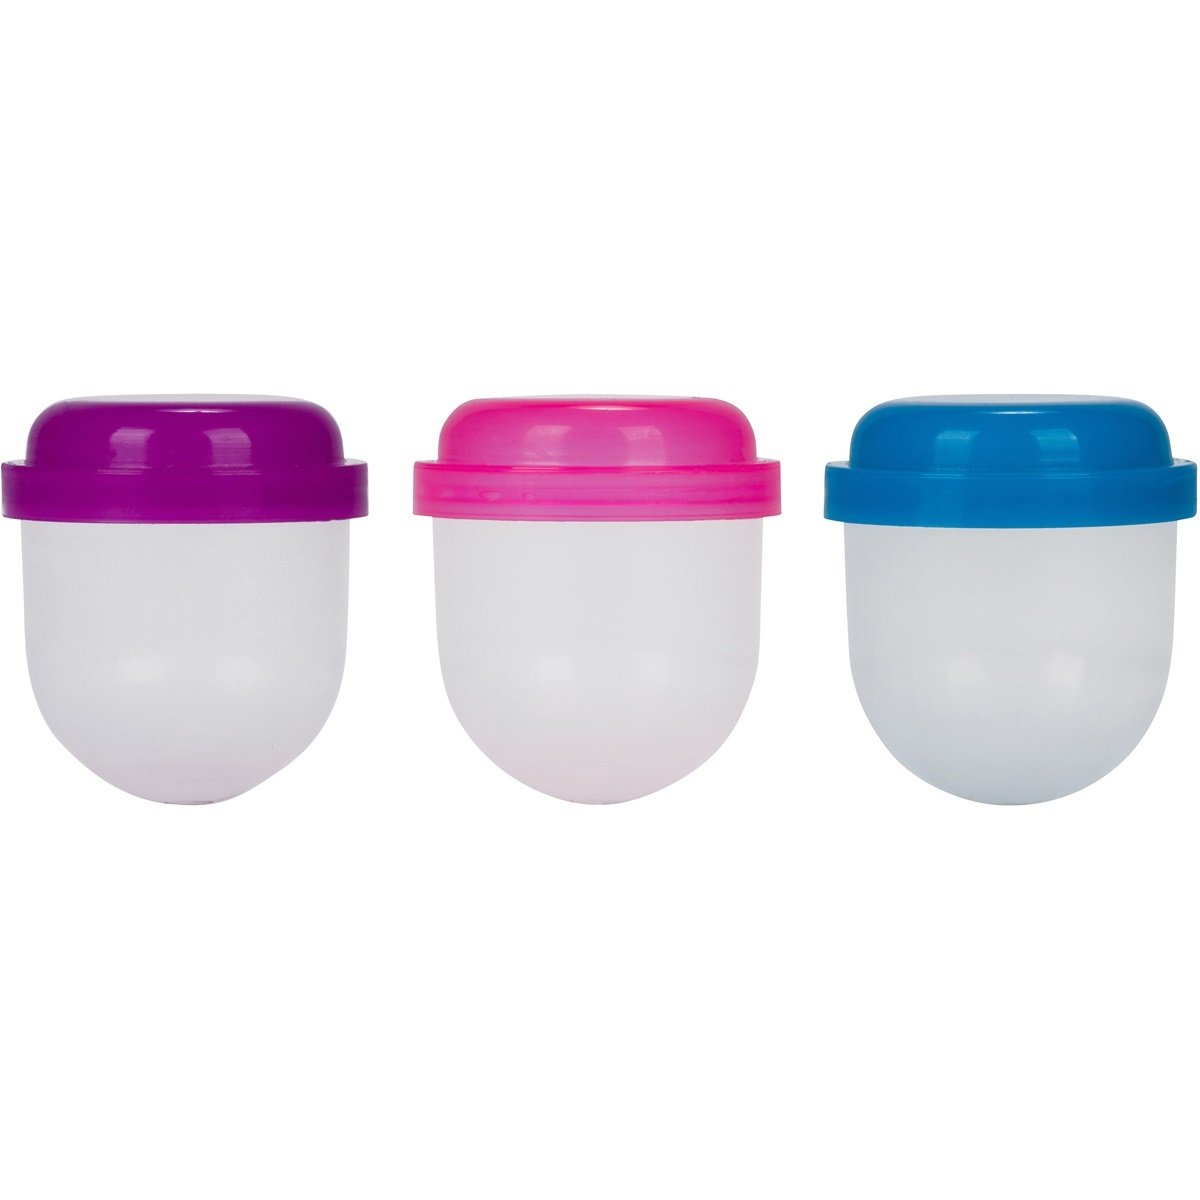 1'' Acorn Capsules: Pink, Blue, Purple Vending Machine Balls, Empty Cases for Gumball Containers, Toy Stands, and Party Favors or Bath Bombs, Rainbow Colored Lids and Clear Bottoms Girls by Candy Machines (Image #2)